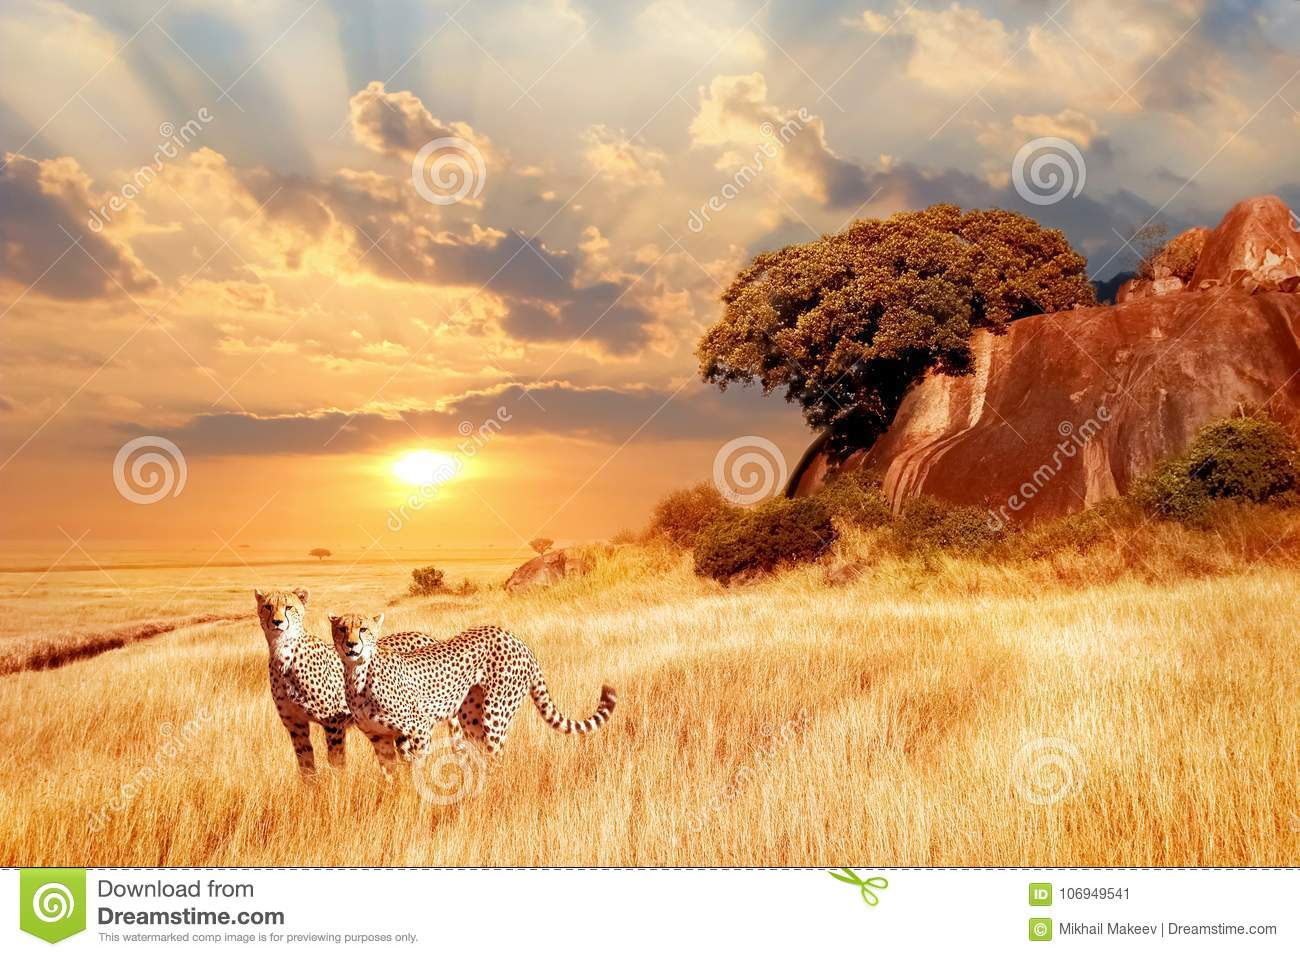 Cheetahs in the African savanna against the backdrop of beautiful sunset. Serengeti National Park. Tanzania. Africa